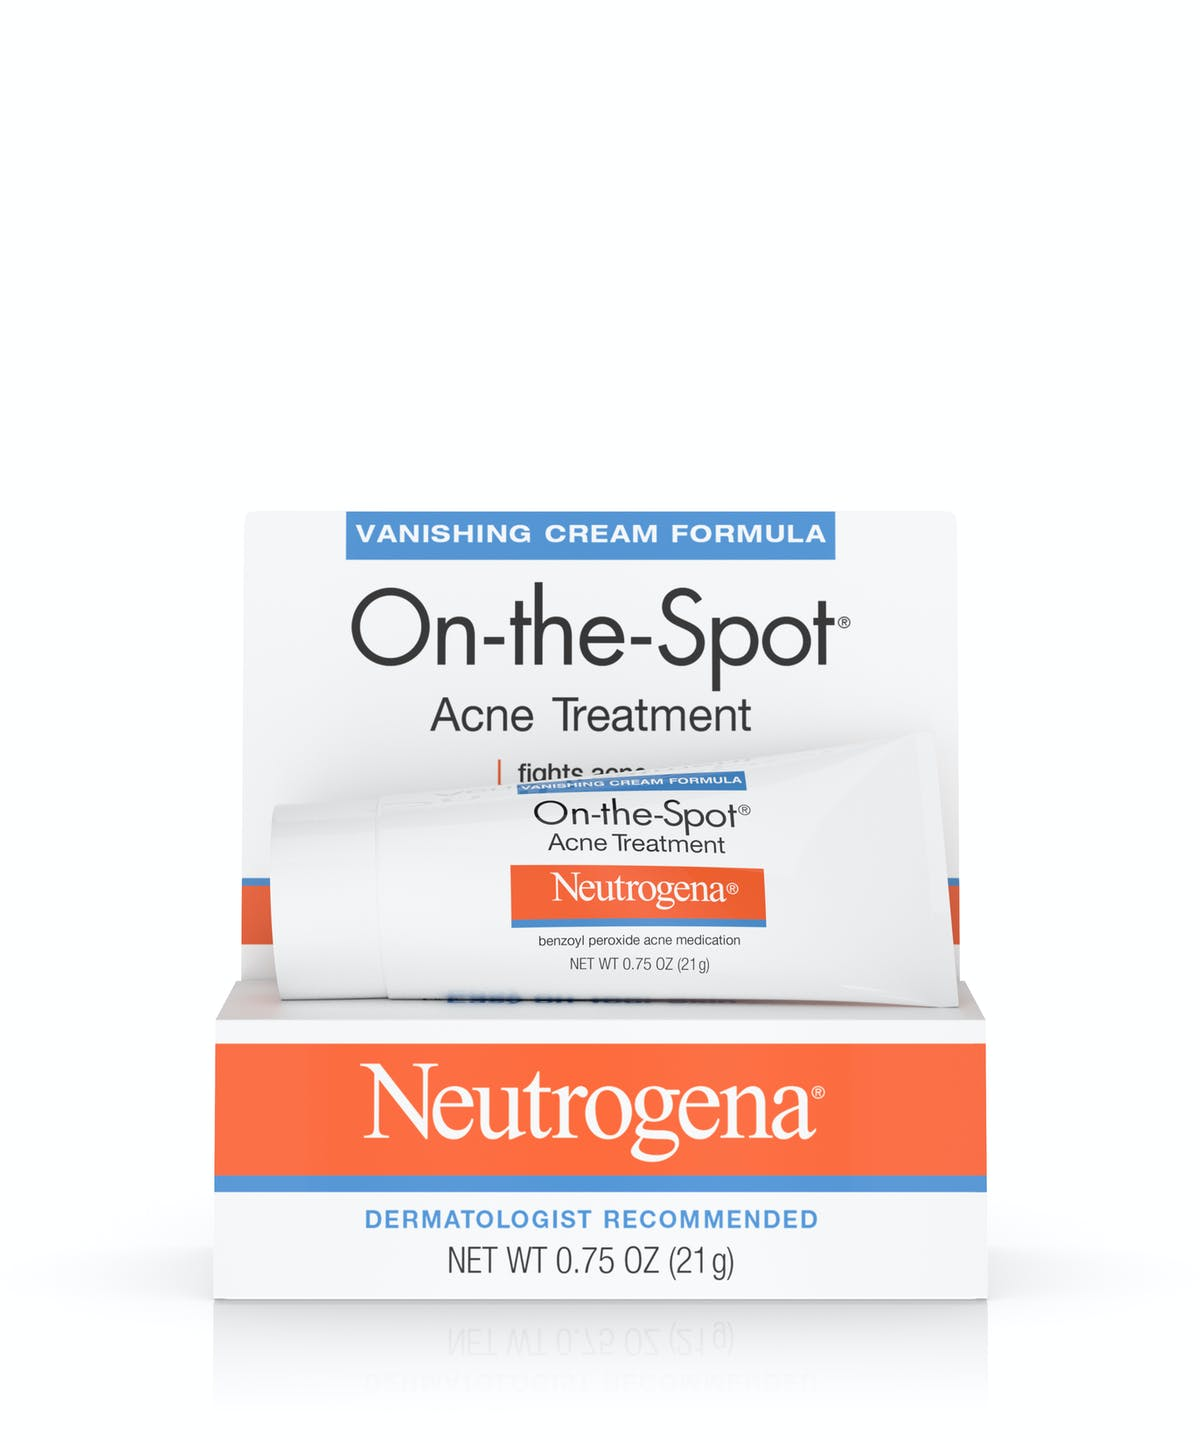 On The Spot Acne Treatment